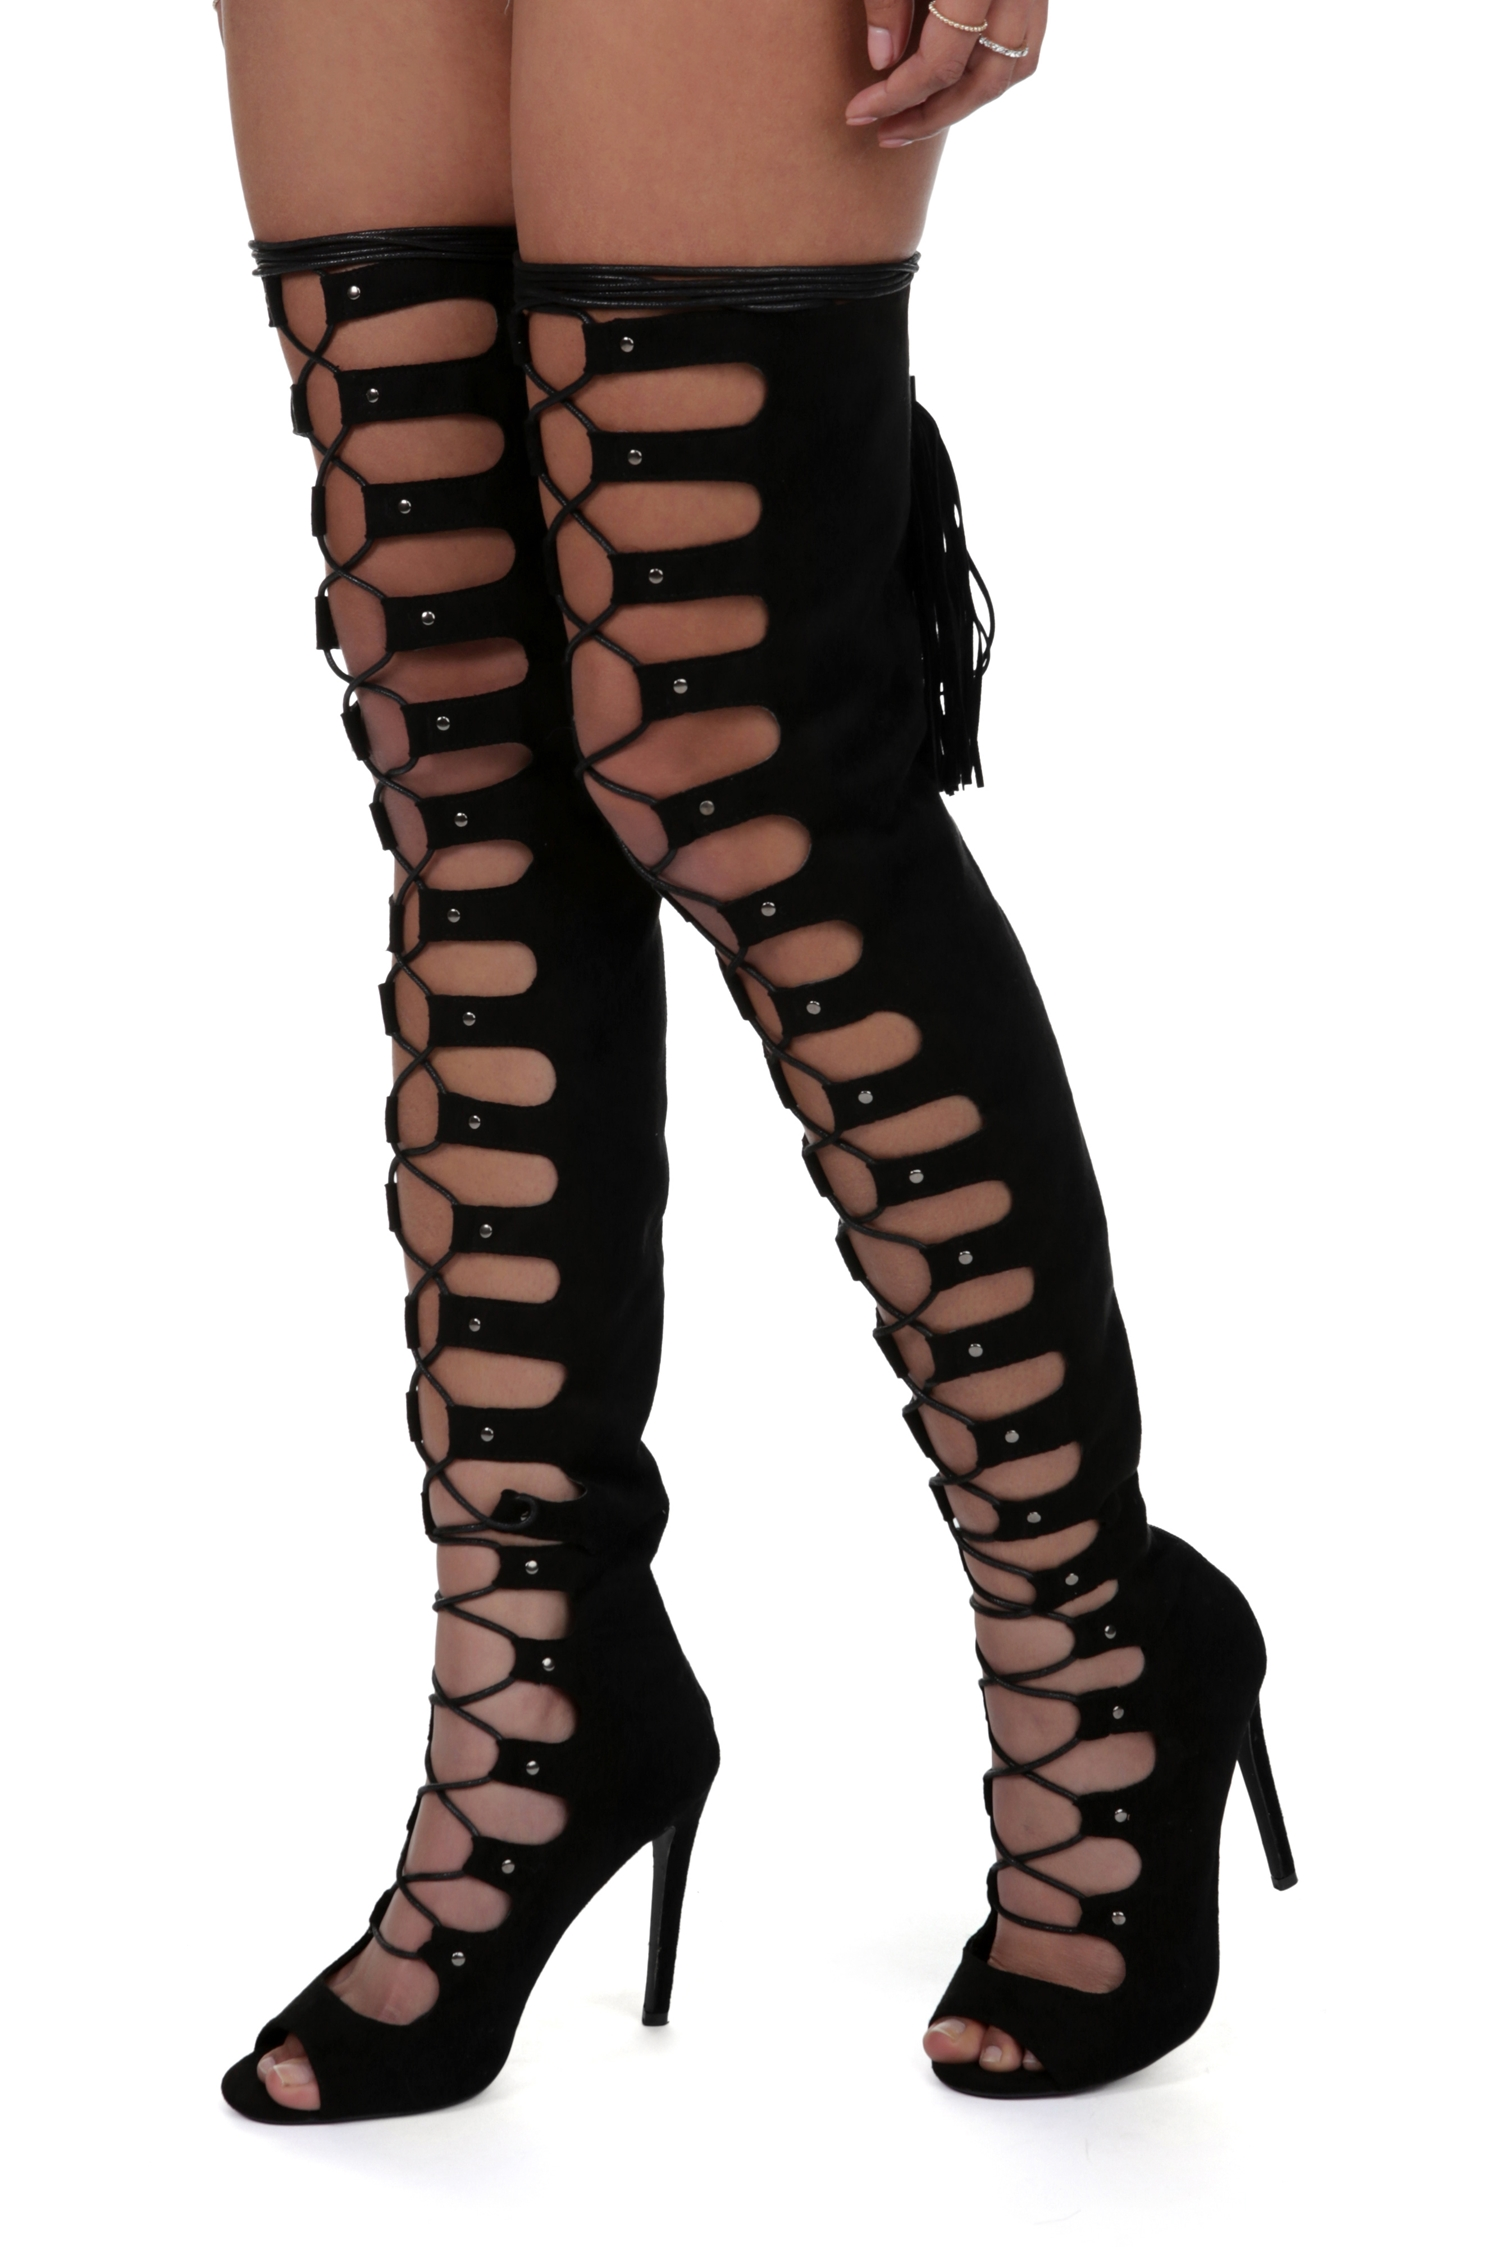 Thigh High Lace Up Open Toe Boots 082PY57Z